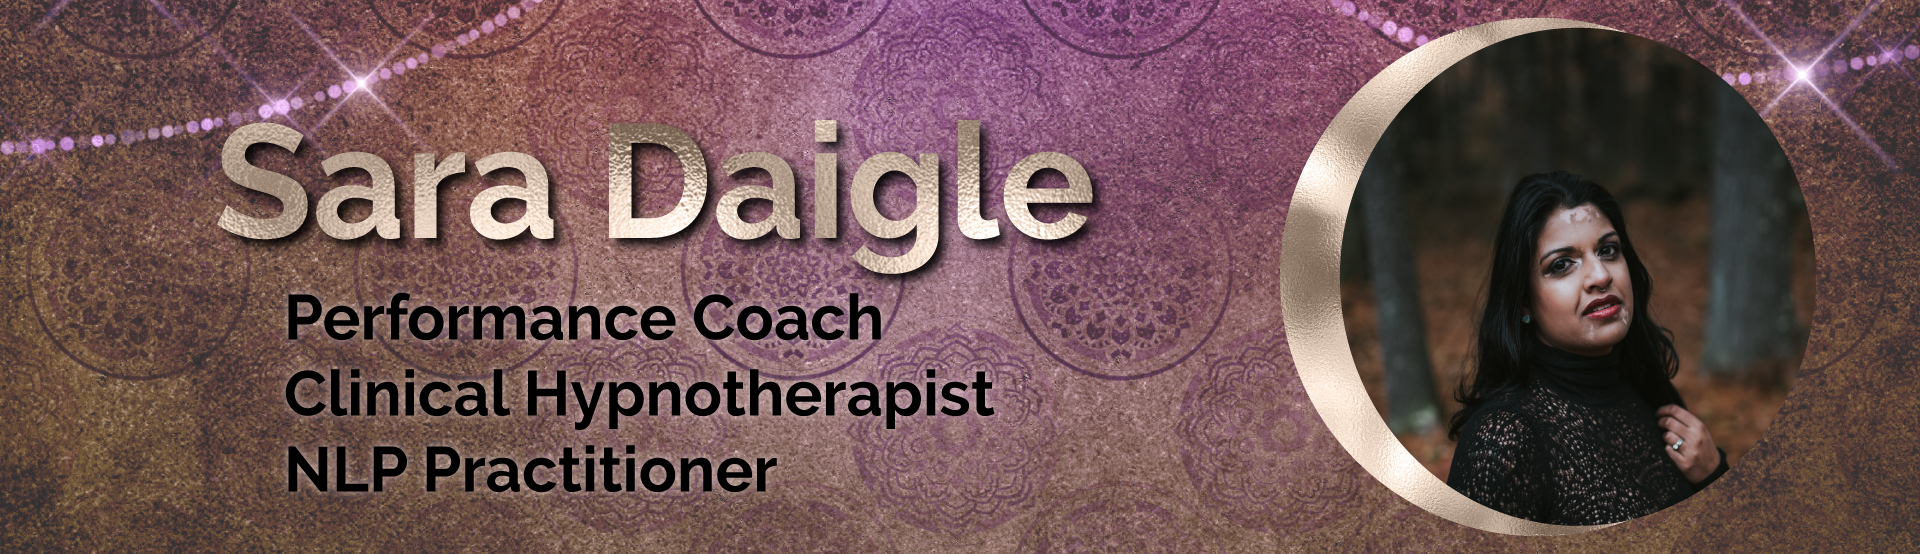 Sara Daigle Business Coaching